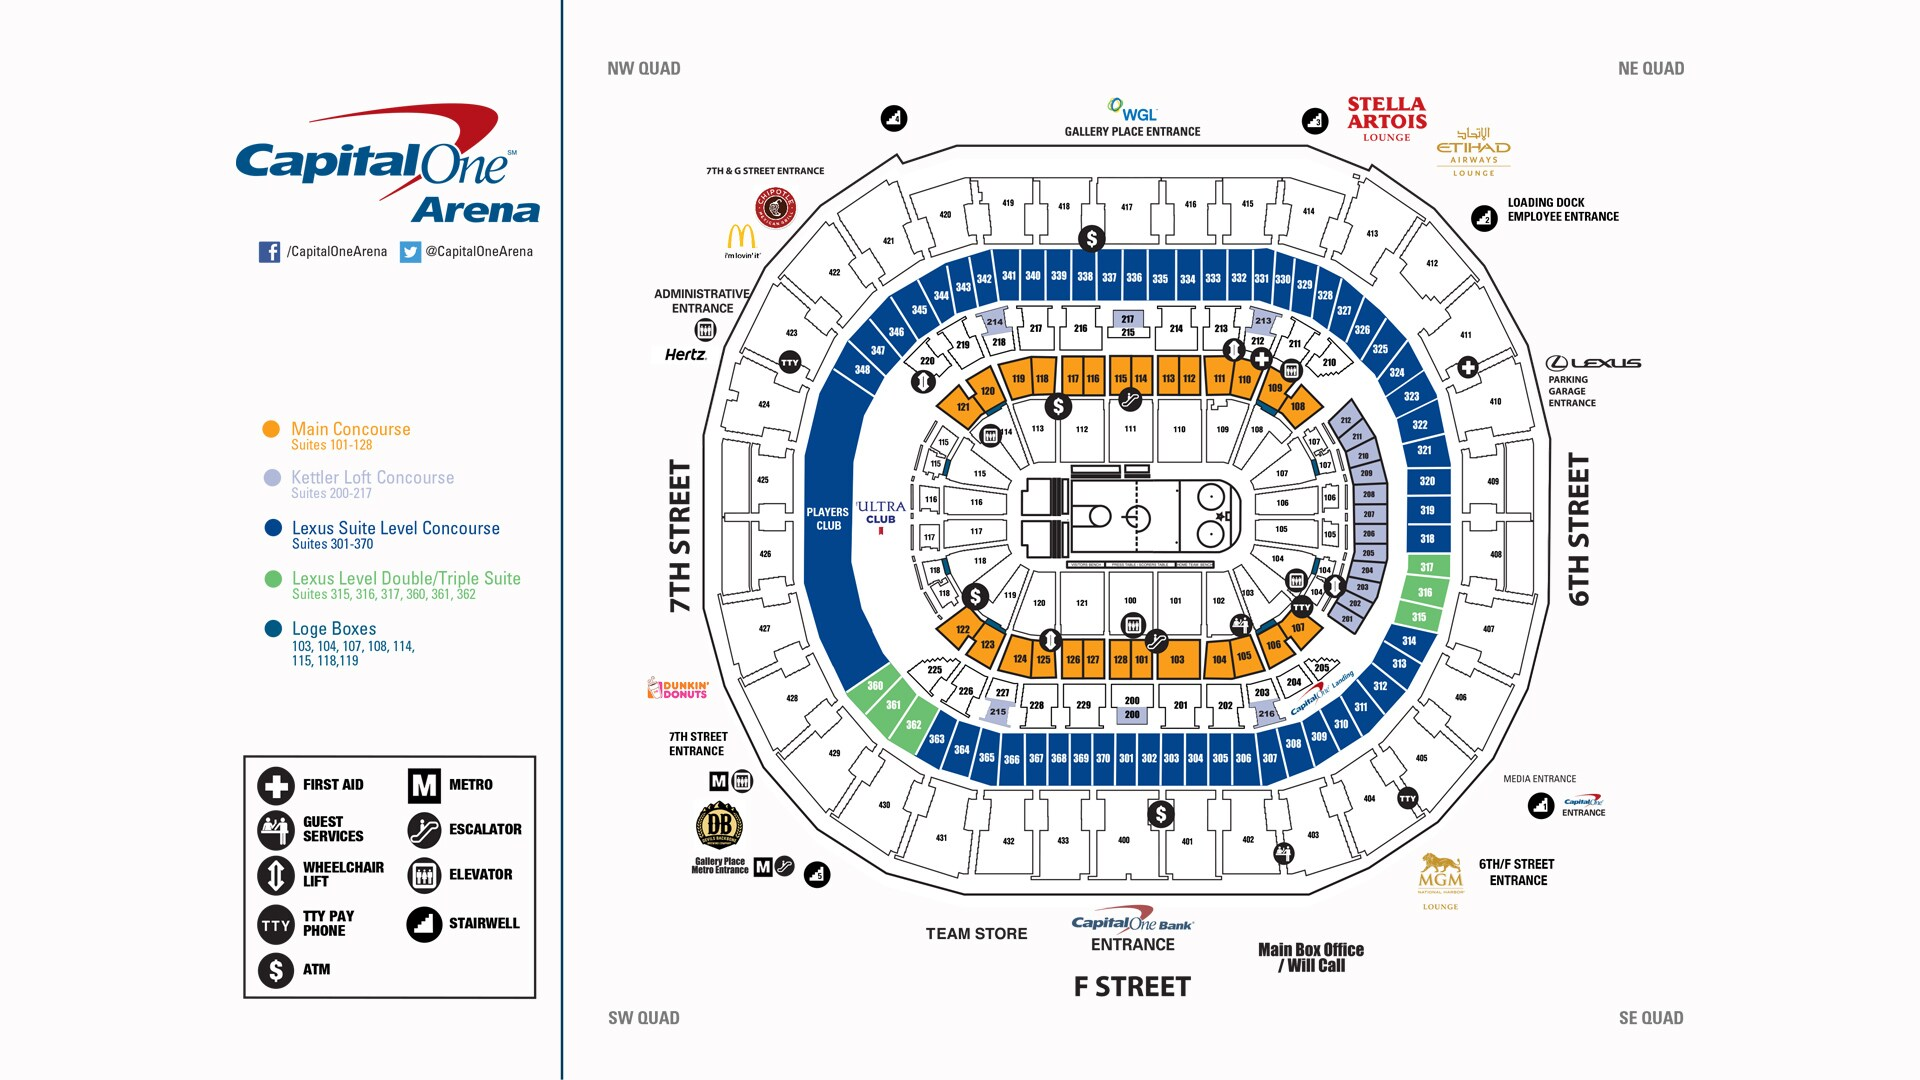 Capital One Arena Seating Charts